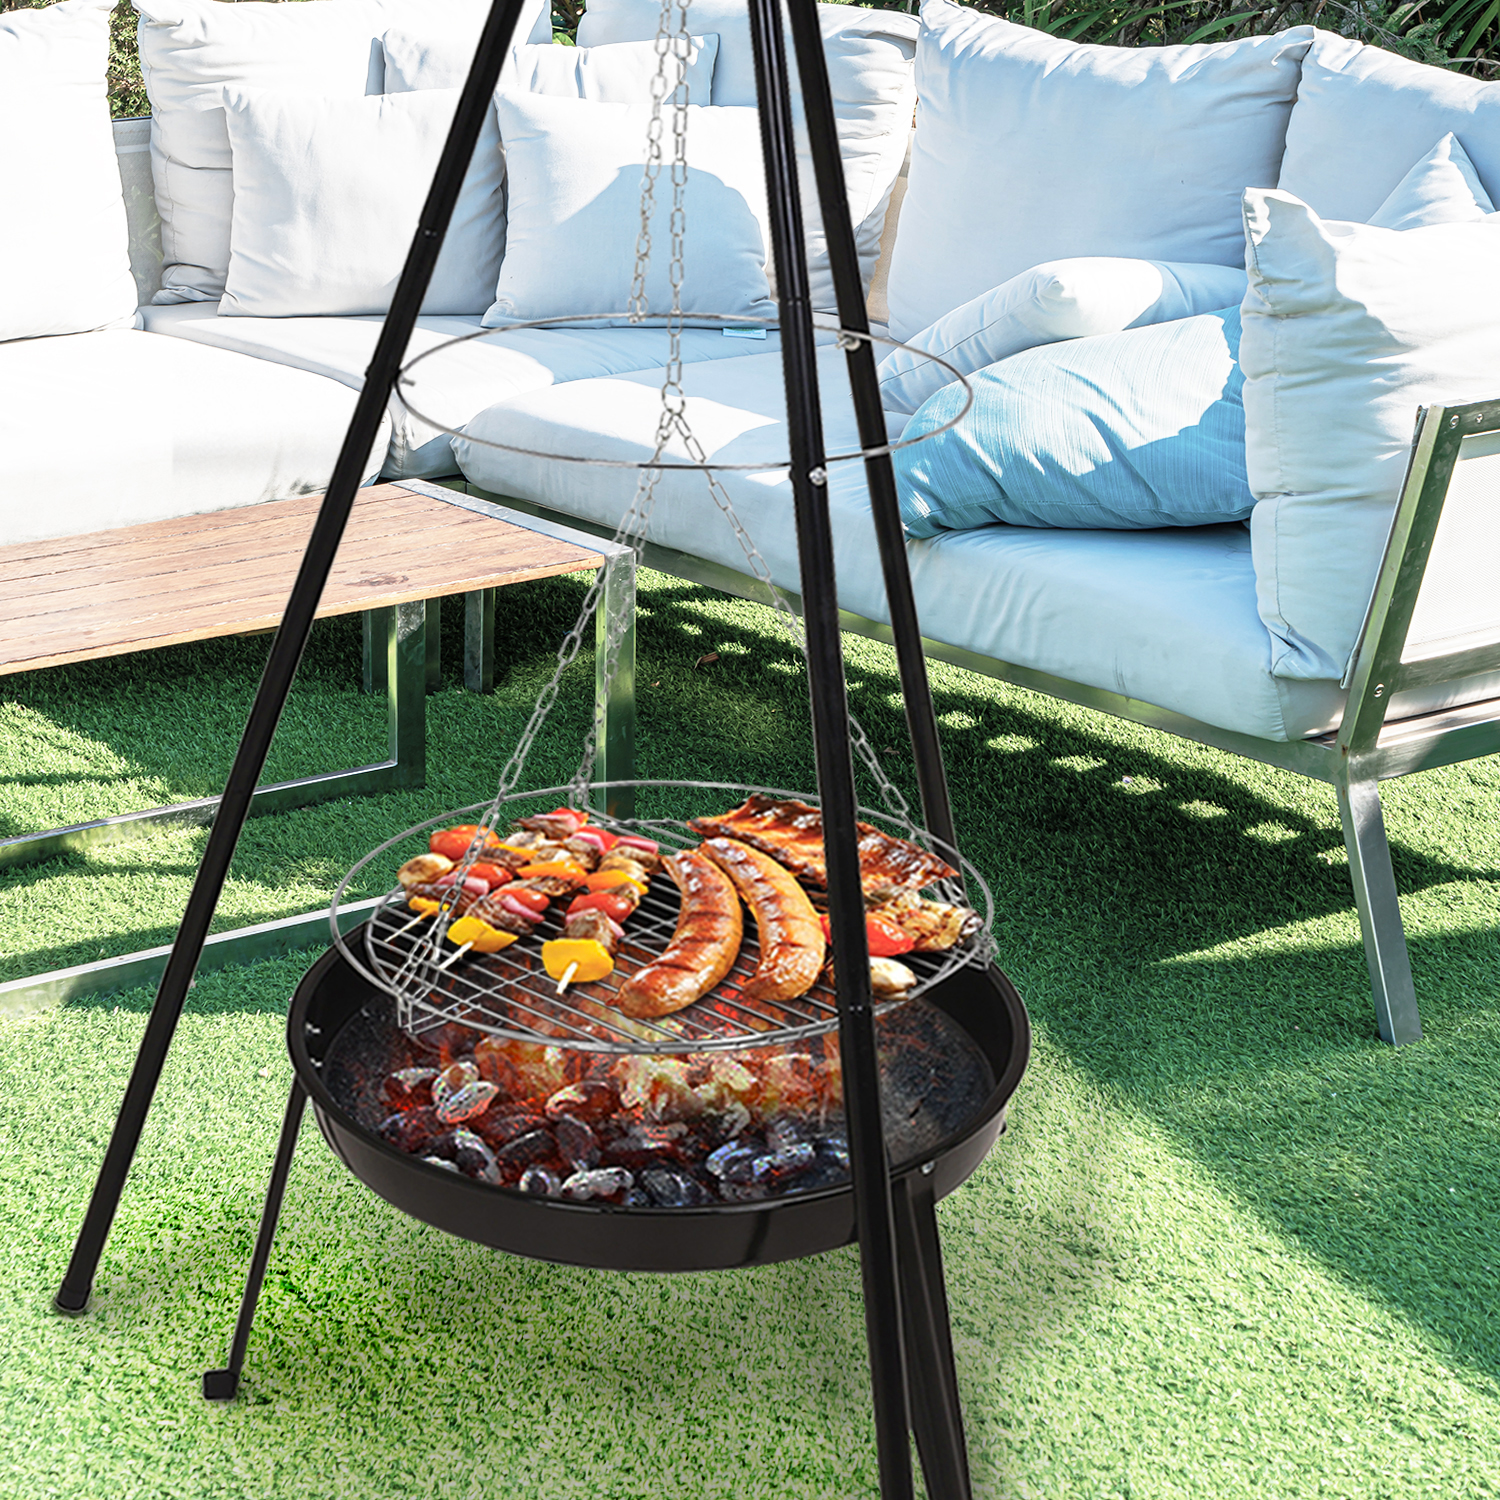 Image of: Hanging Bbq Grill Firepit Campfire Outdoor Fire Cooking Patio Garden Pit Camping Ebay